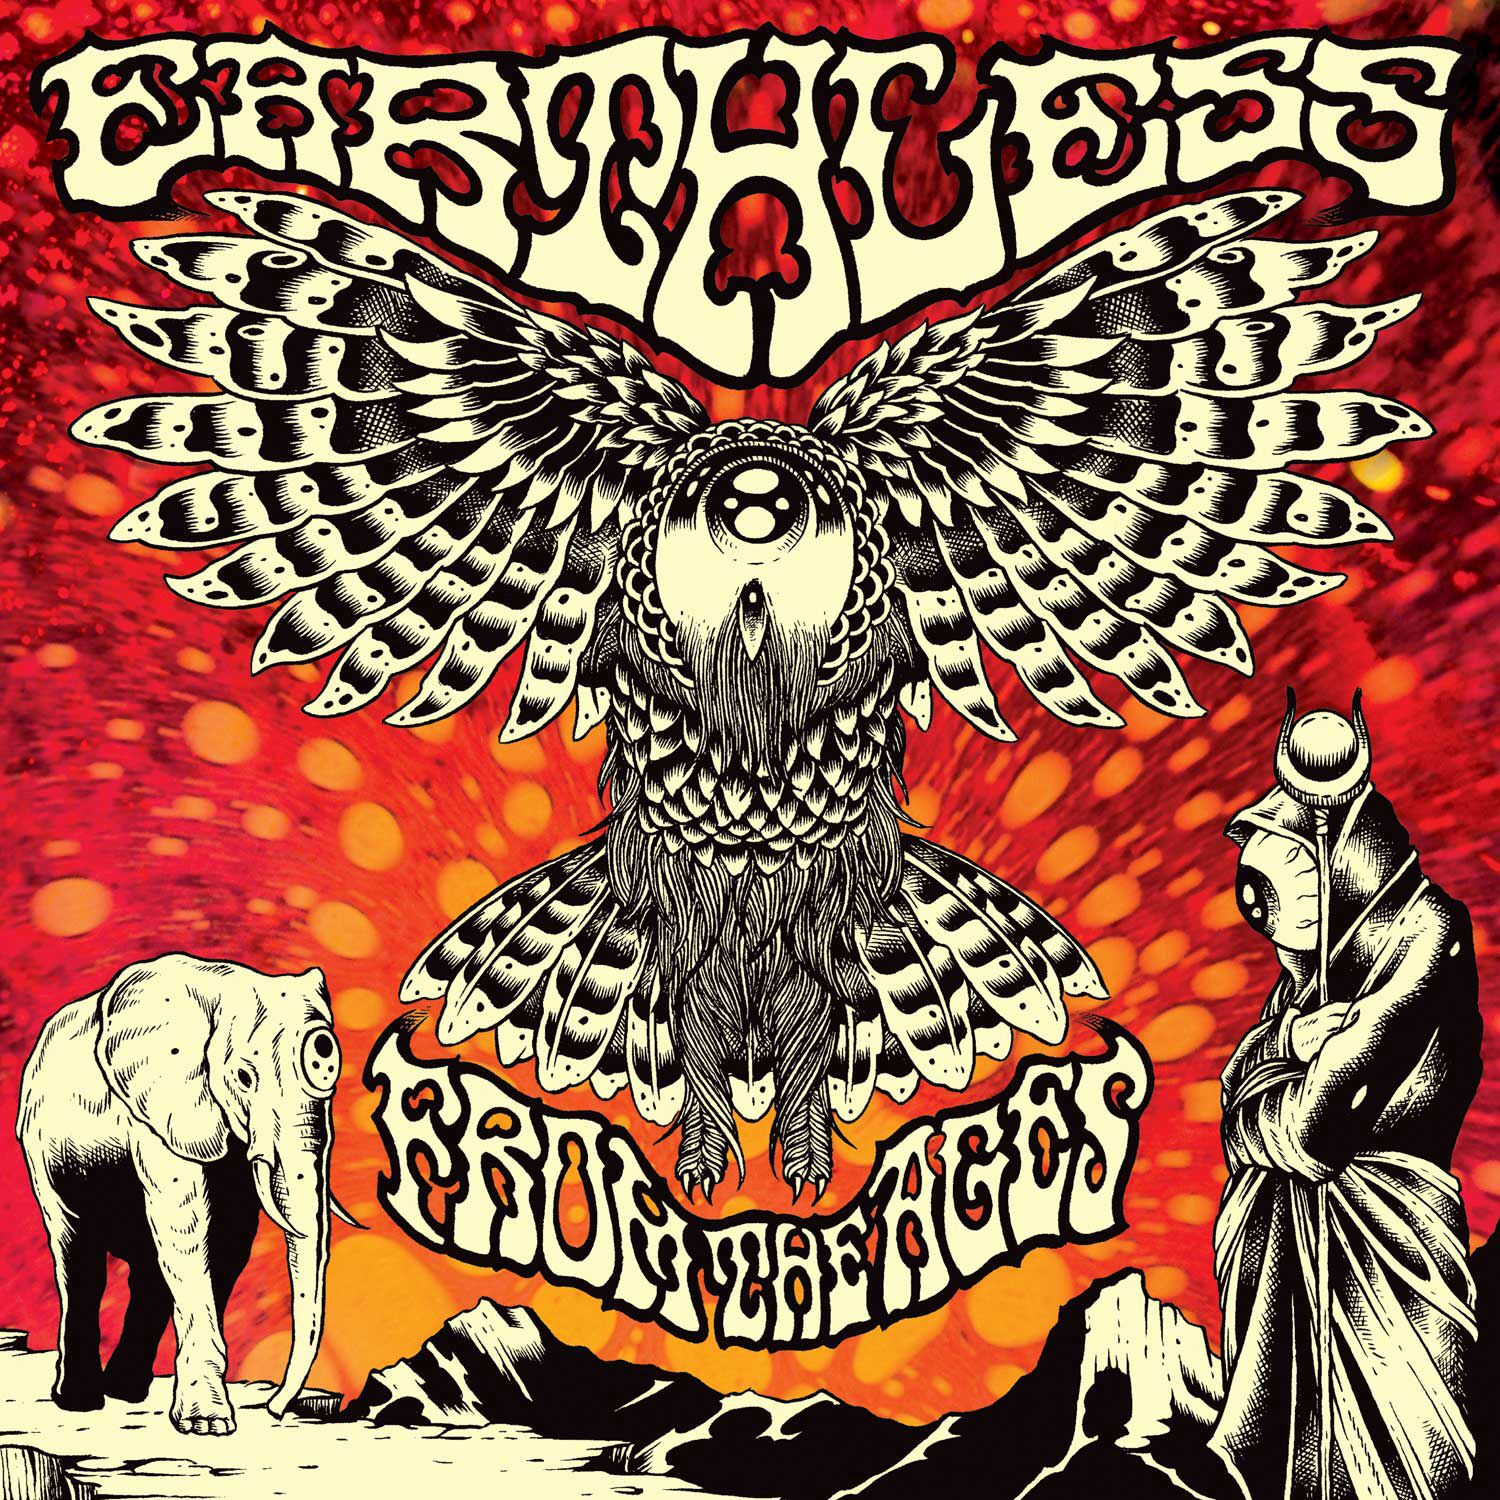 Currently listening to #Earthless #FromtheAges